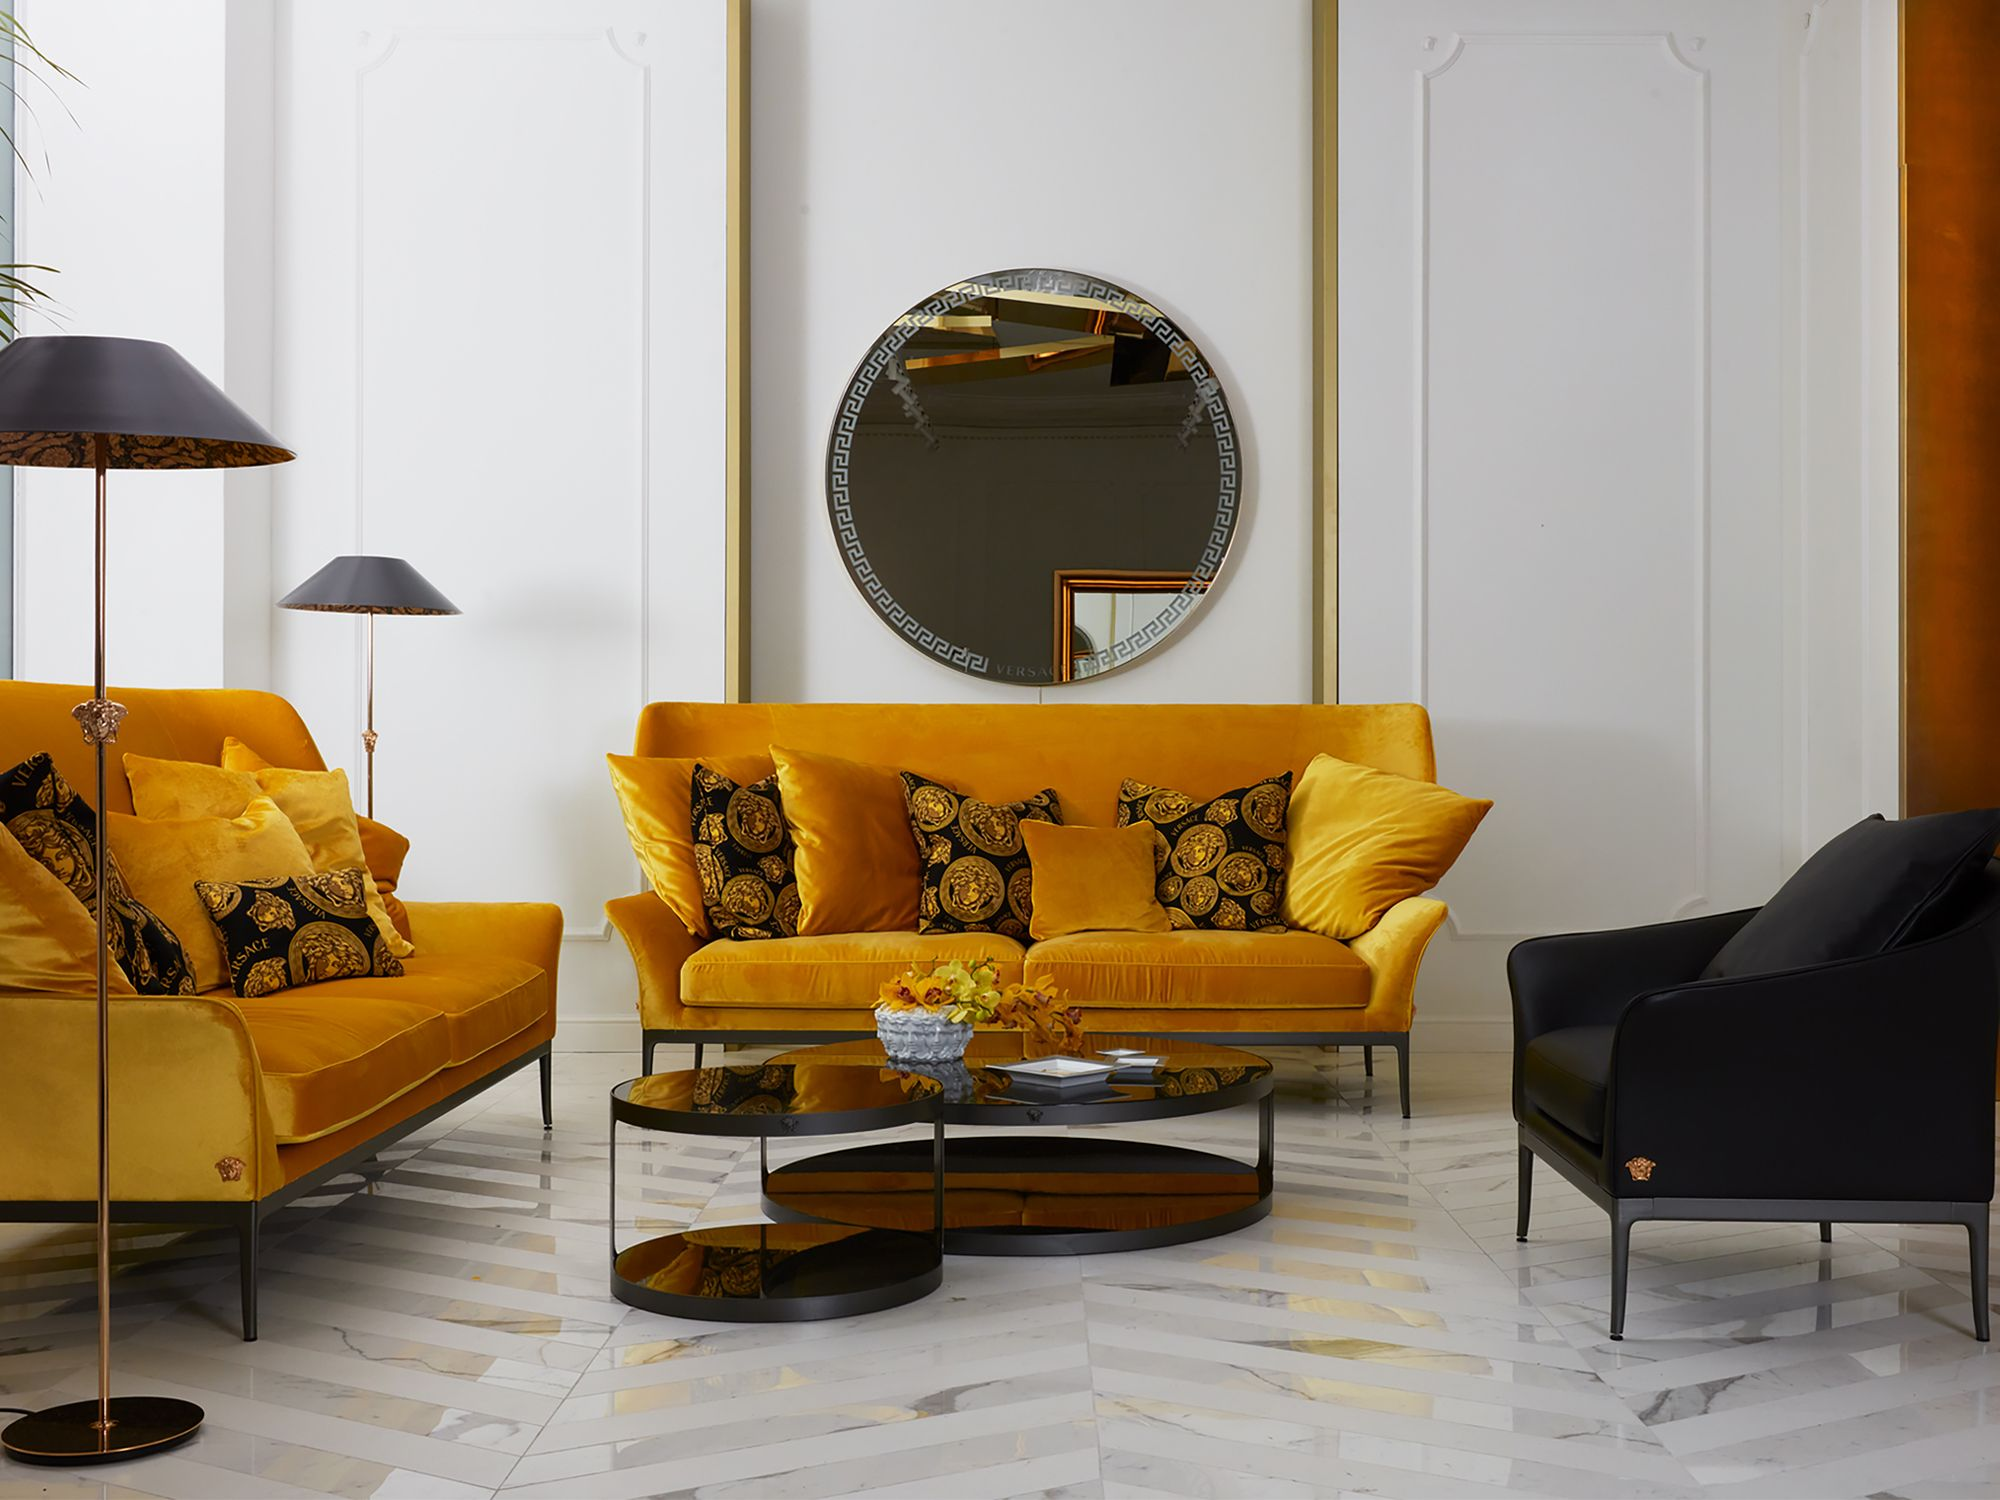 Gold and black influences reign this space in the Versace Home flagship boutique